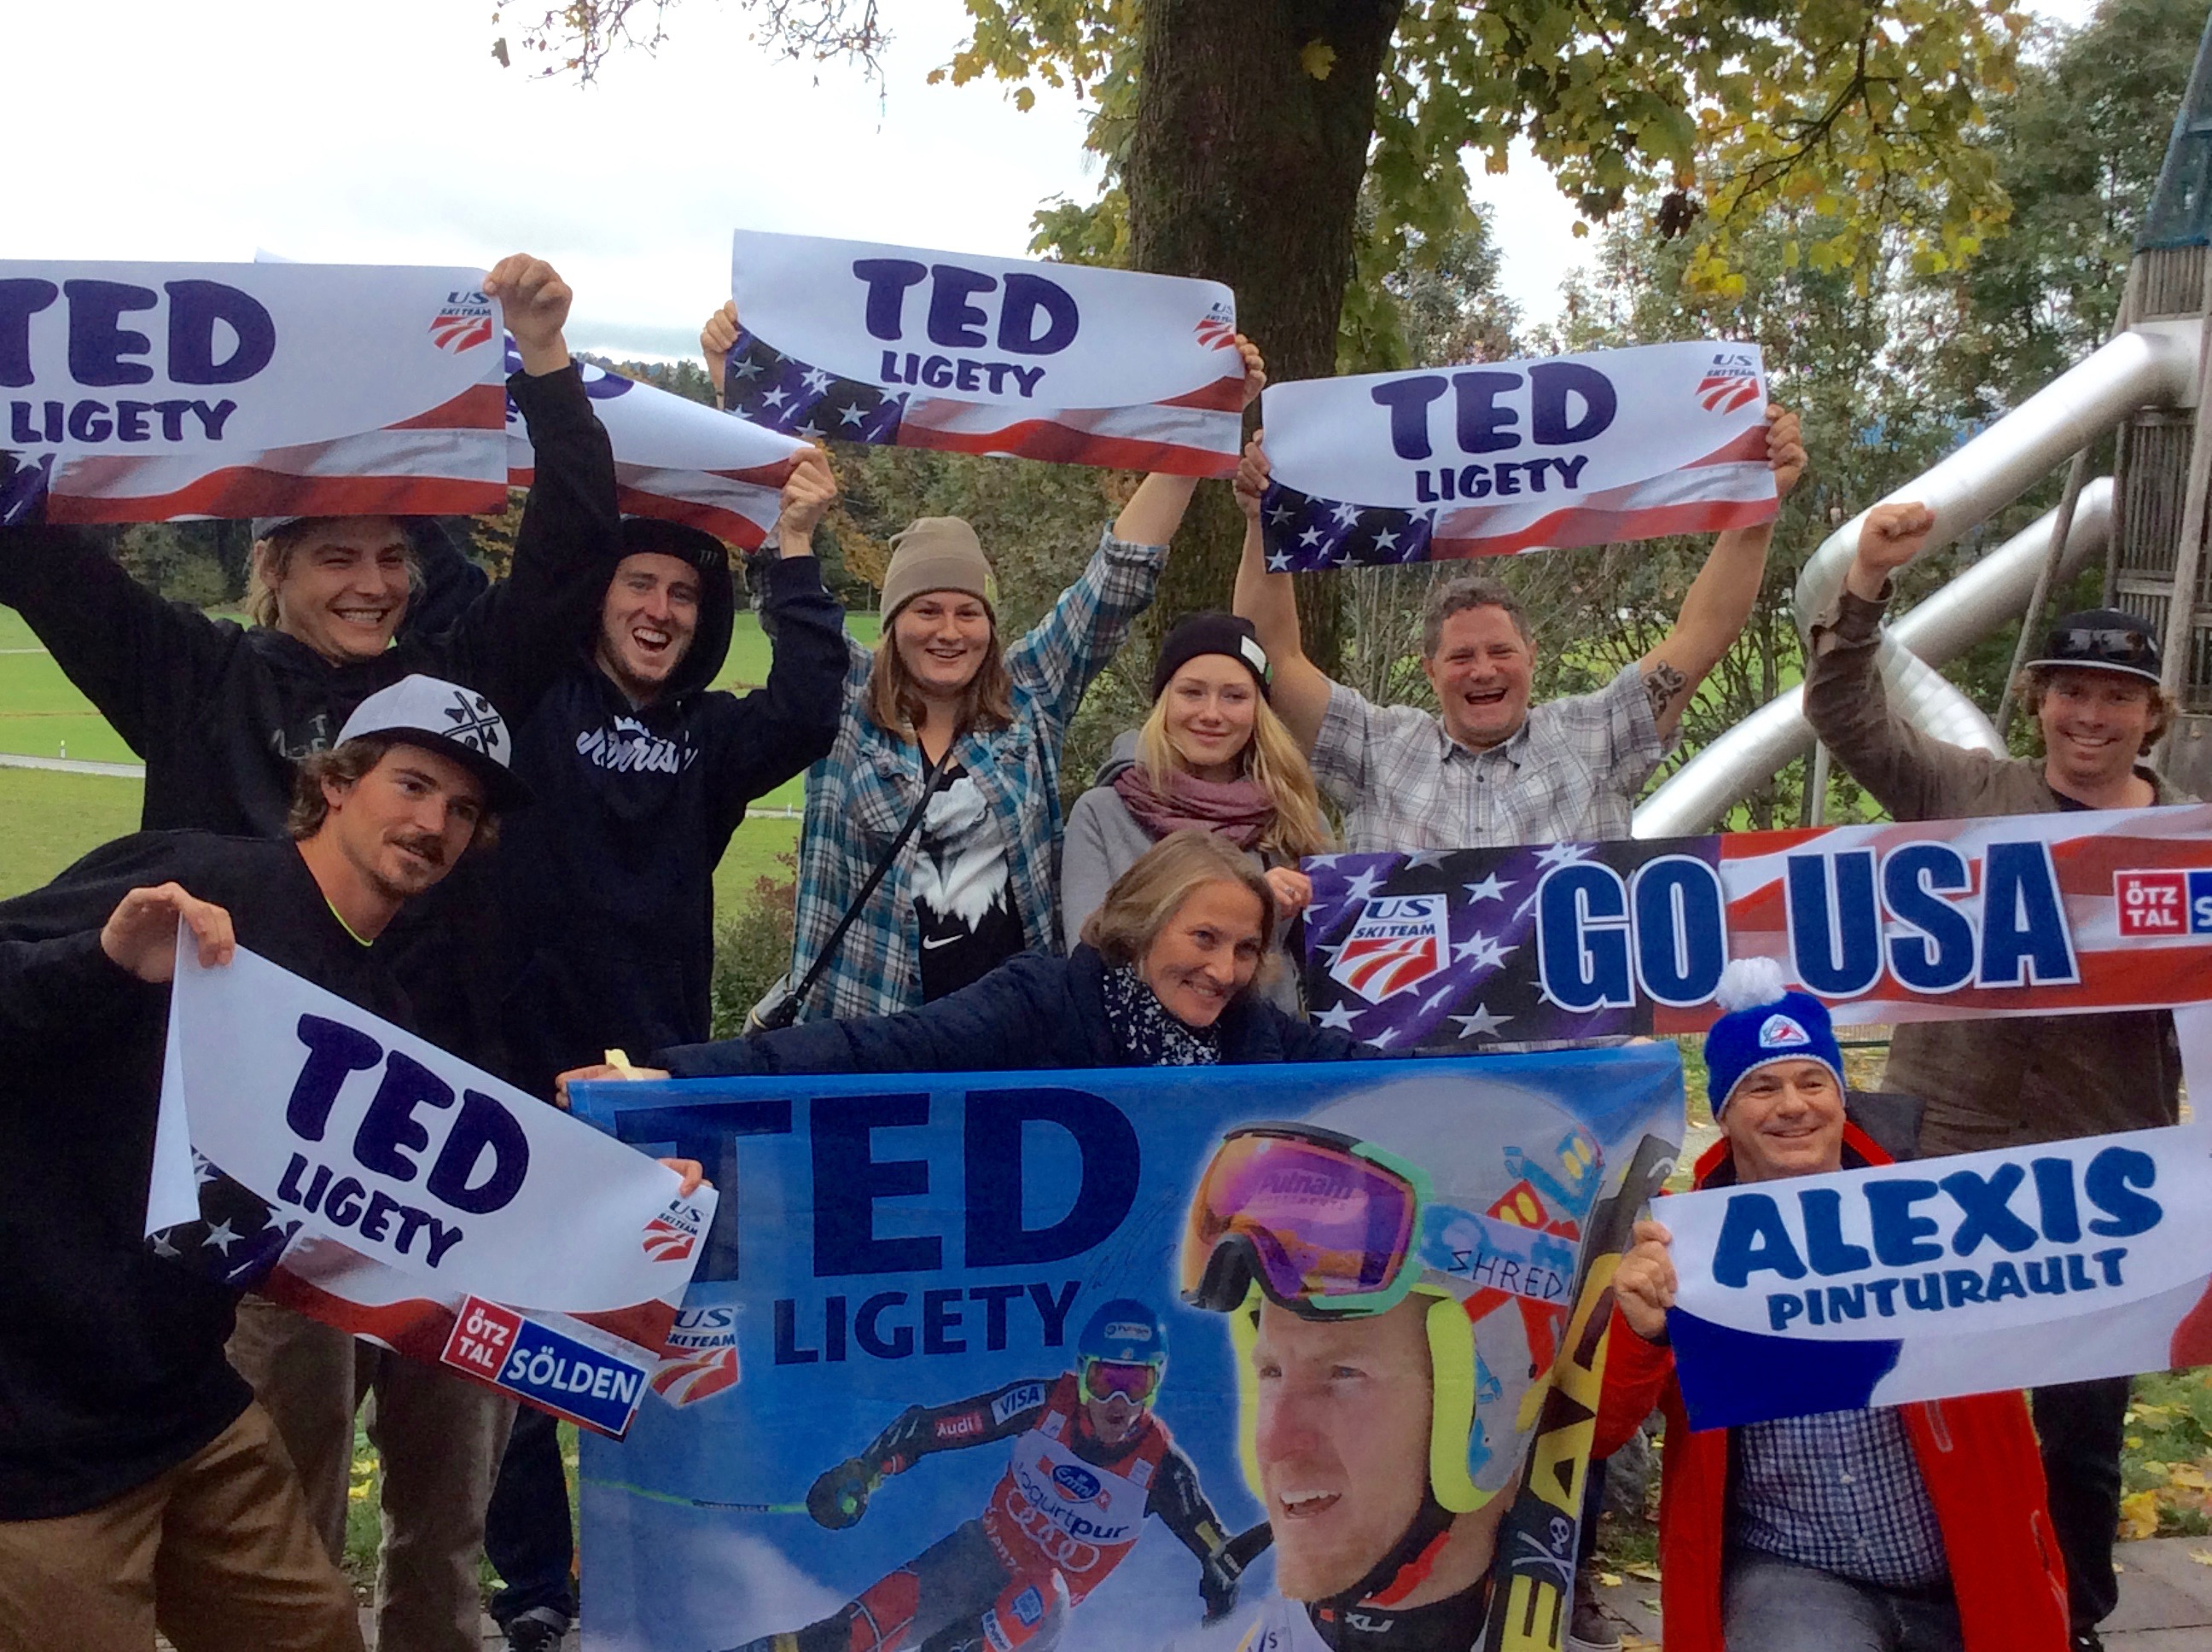 U.S Ski team athletes cheering Ted LIGETY